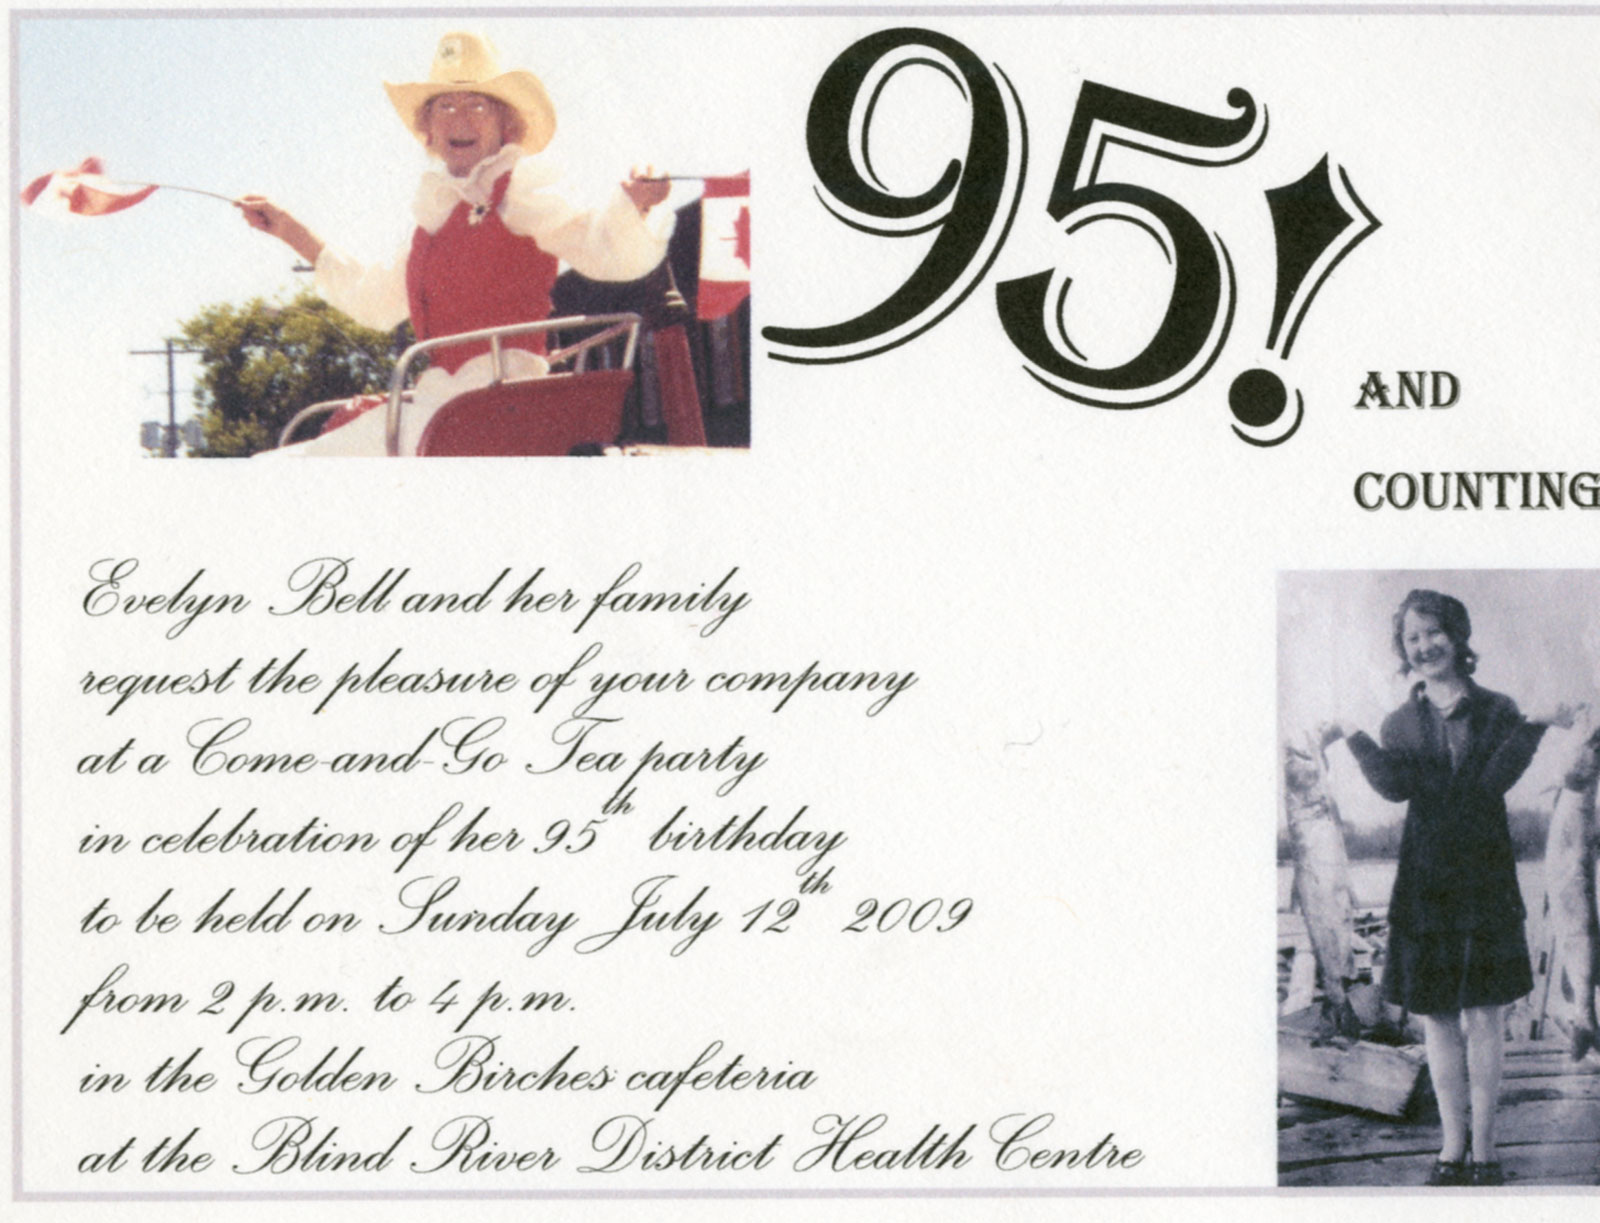 95 And Counting Evelyn Bell Birthday Invitation Blind River 2009 Digital Collection